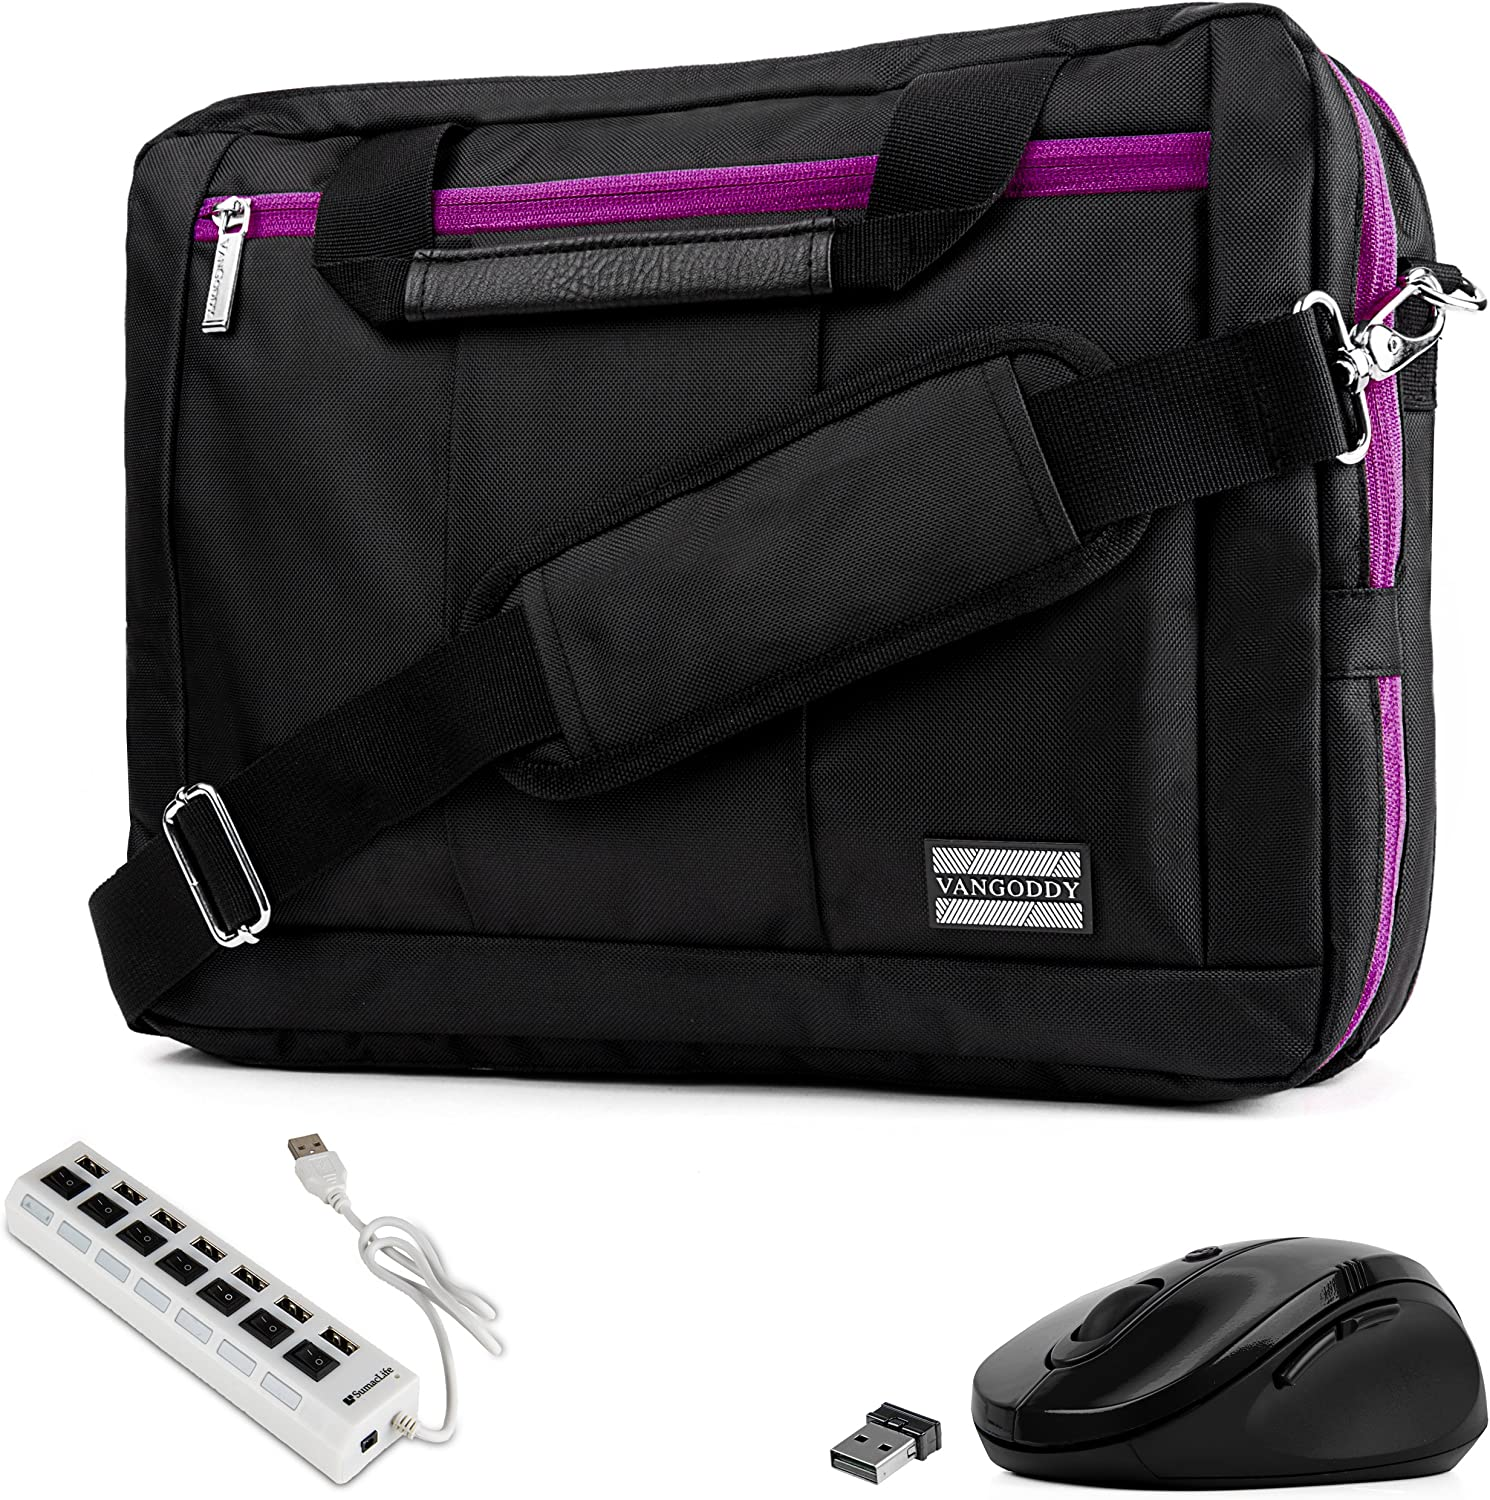 """Purple Trim Convertible Laptop Bag, USB Hub, Mouse for Dell Inspiron, Latitude, XPS, ChromeBook 11"""" to 13.3 inch"""